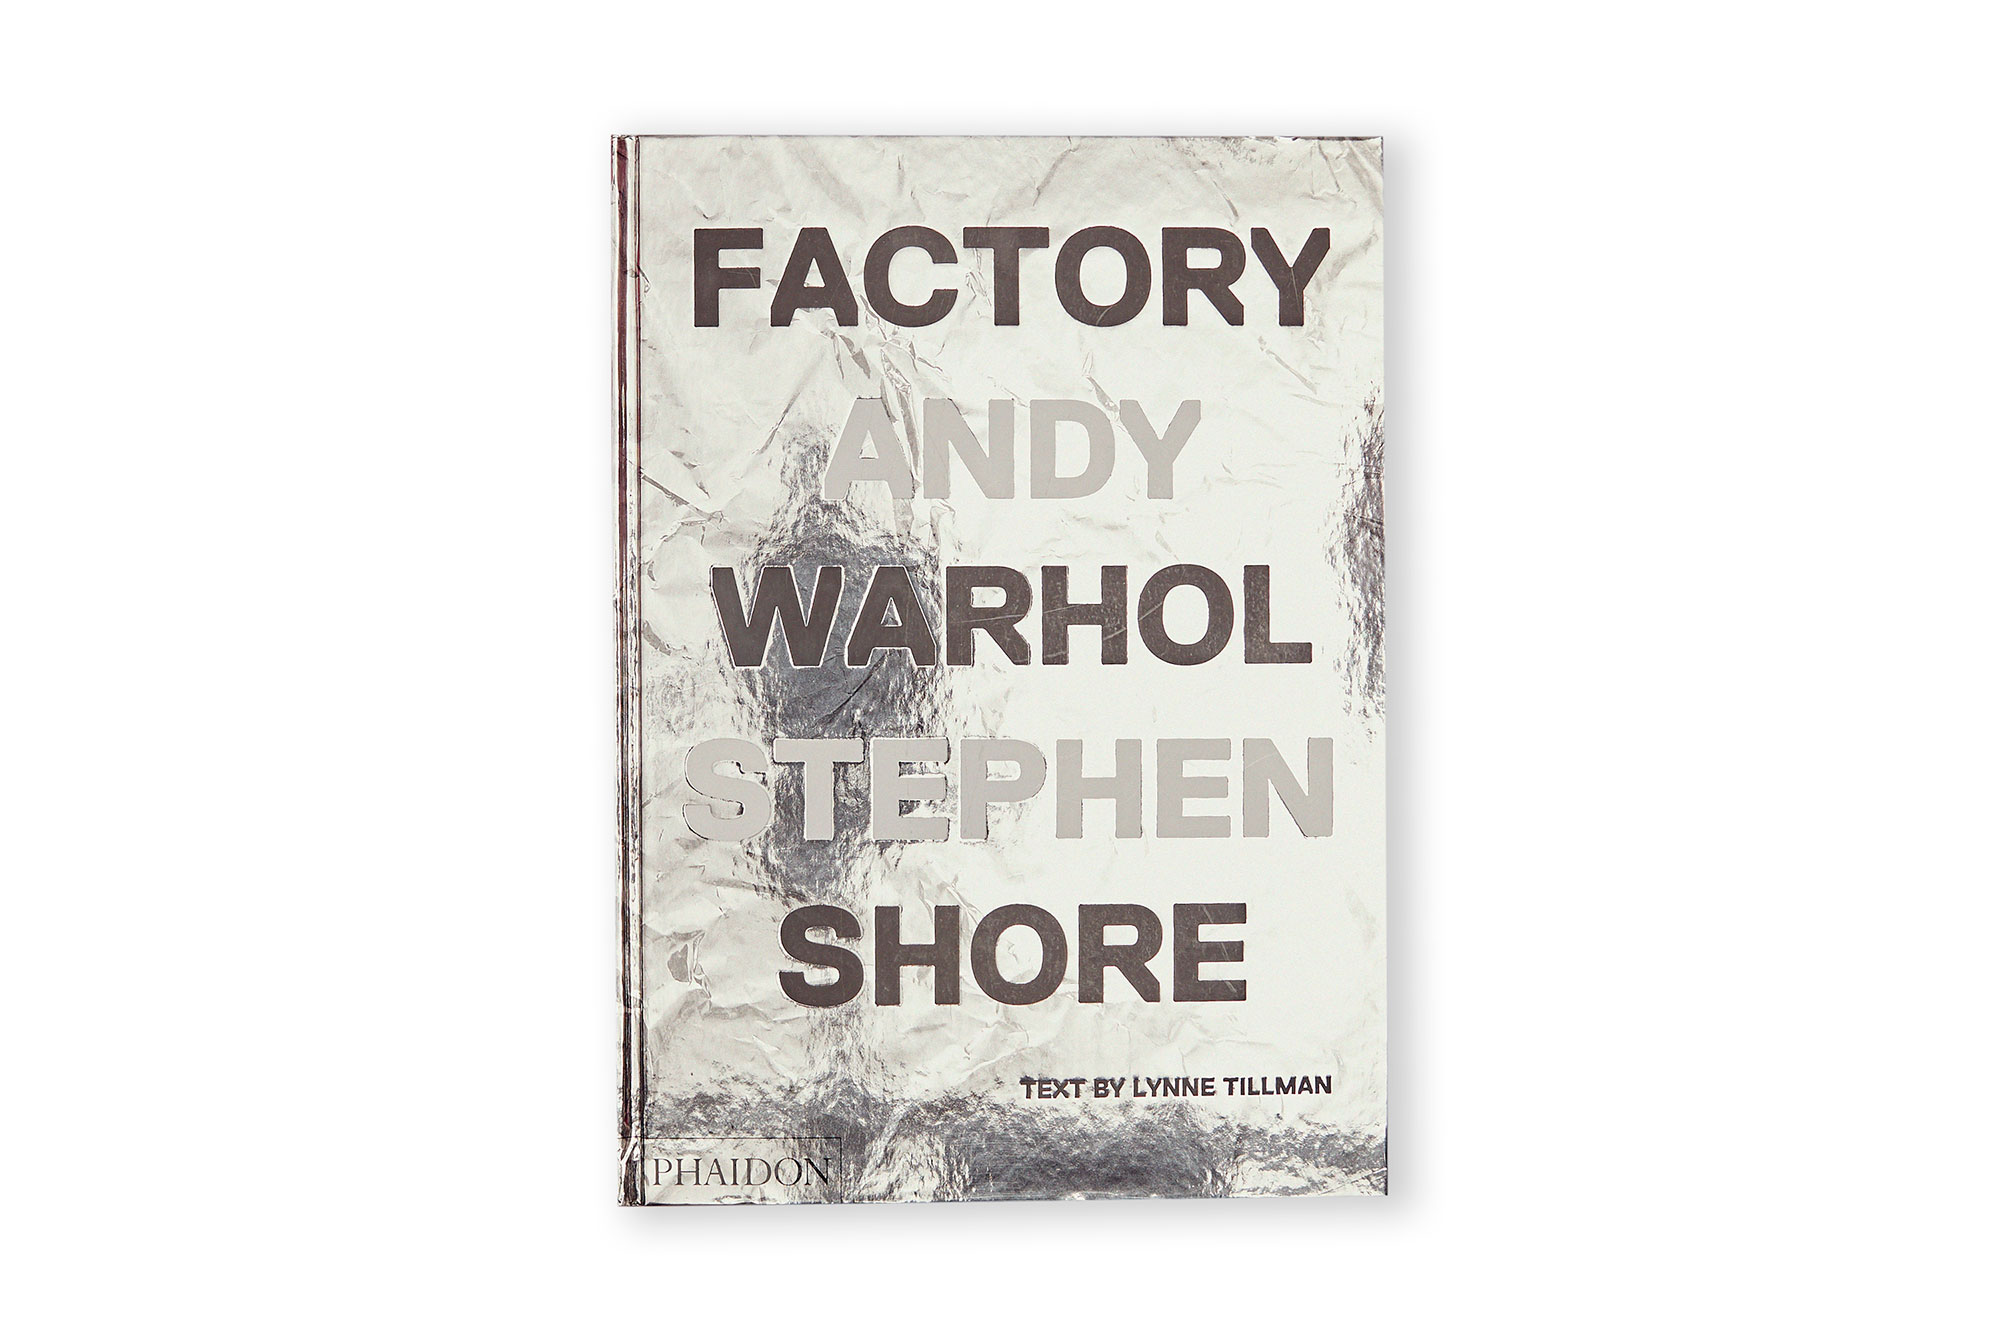 FACTORY, ANDY WARHOL, stephen shore.